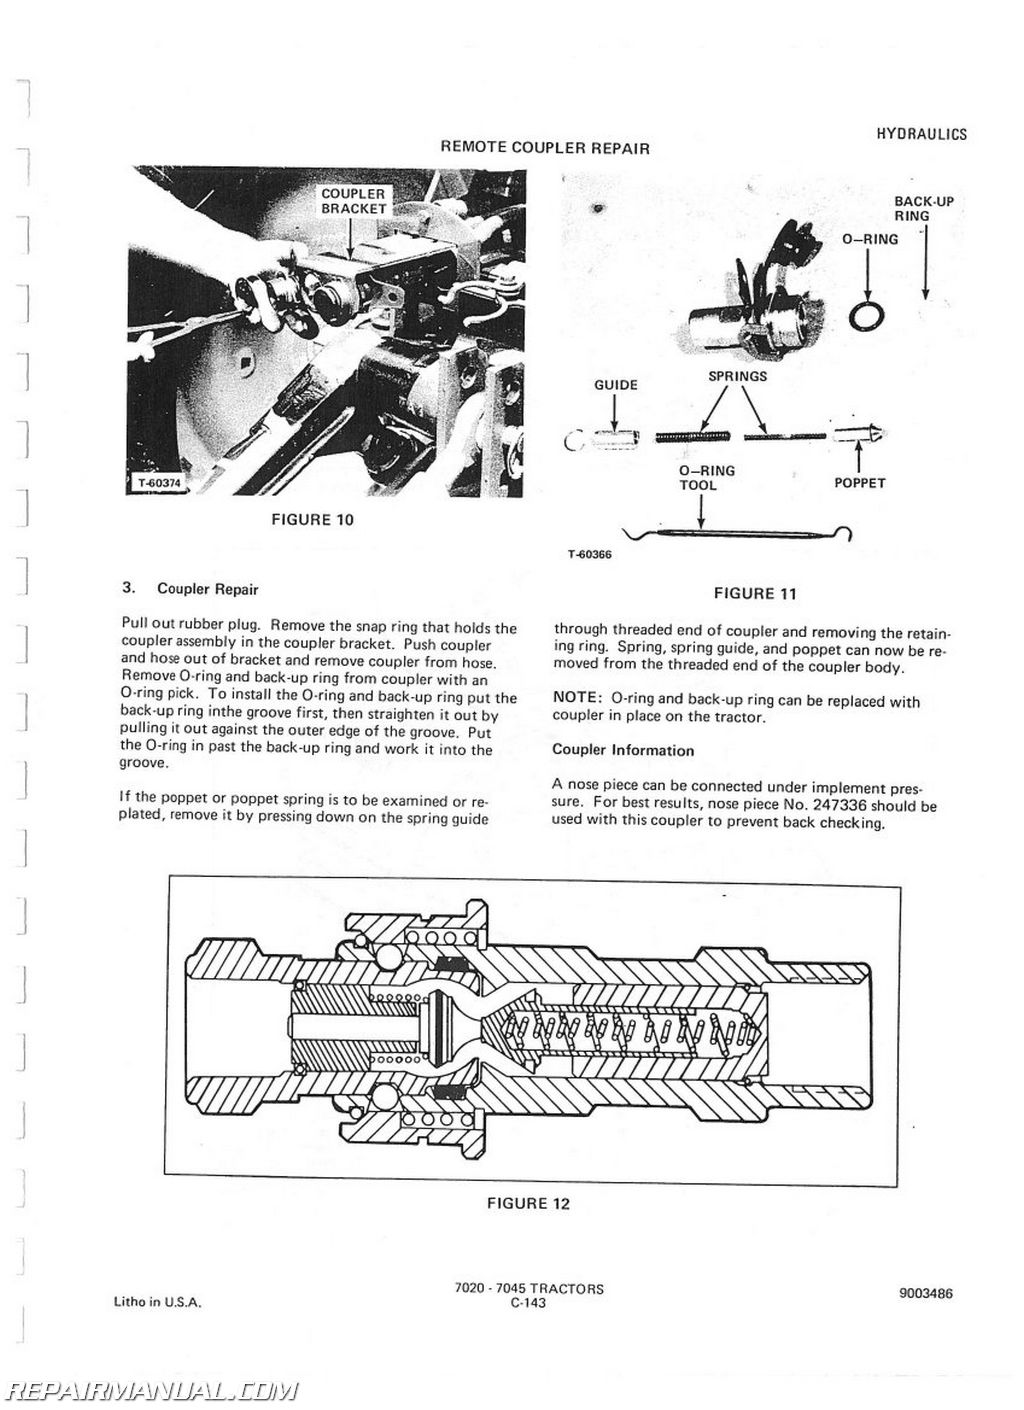 Allis-Chalmers 7010 7020 7045 DSL Service Manual